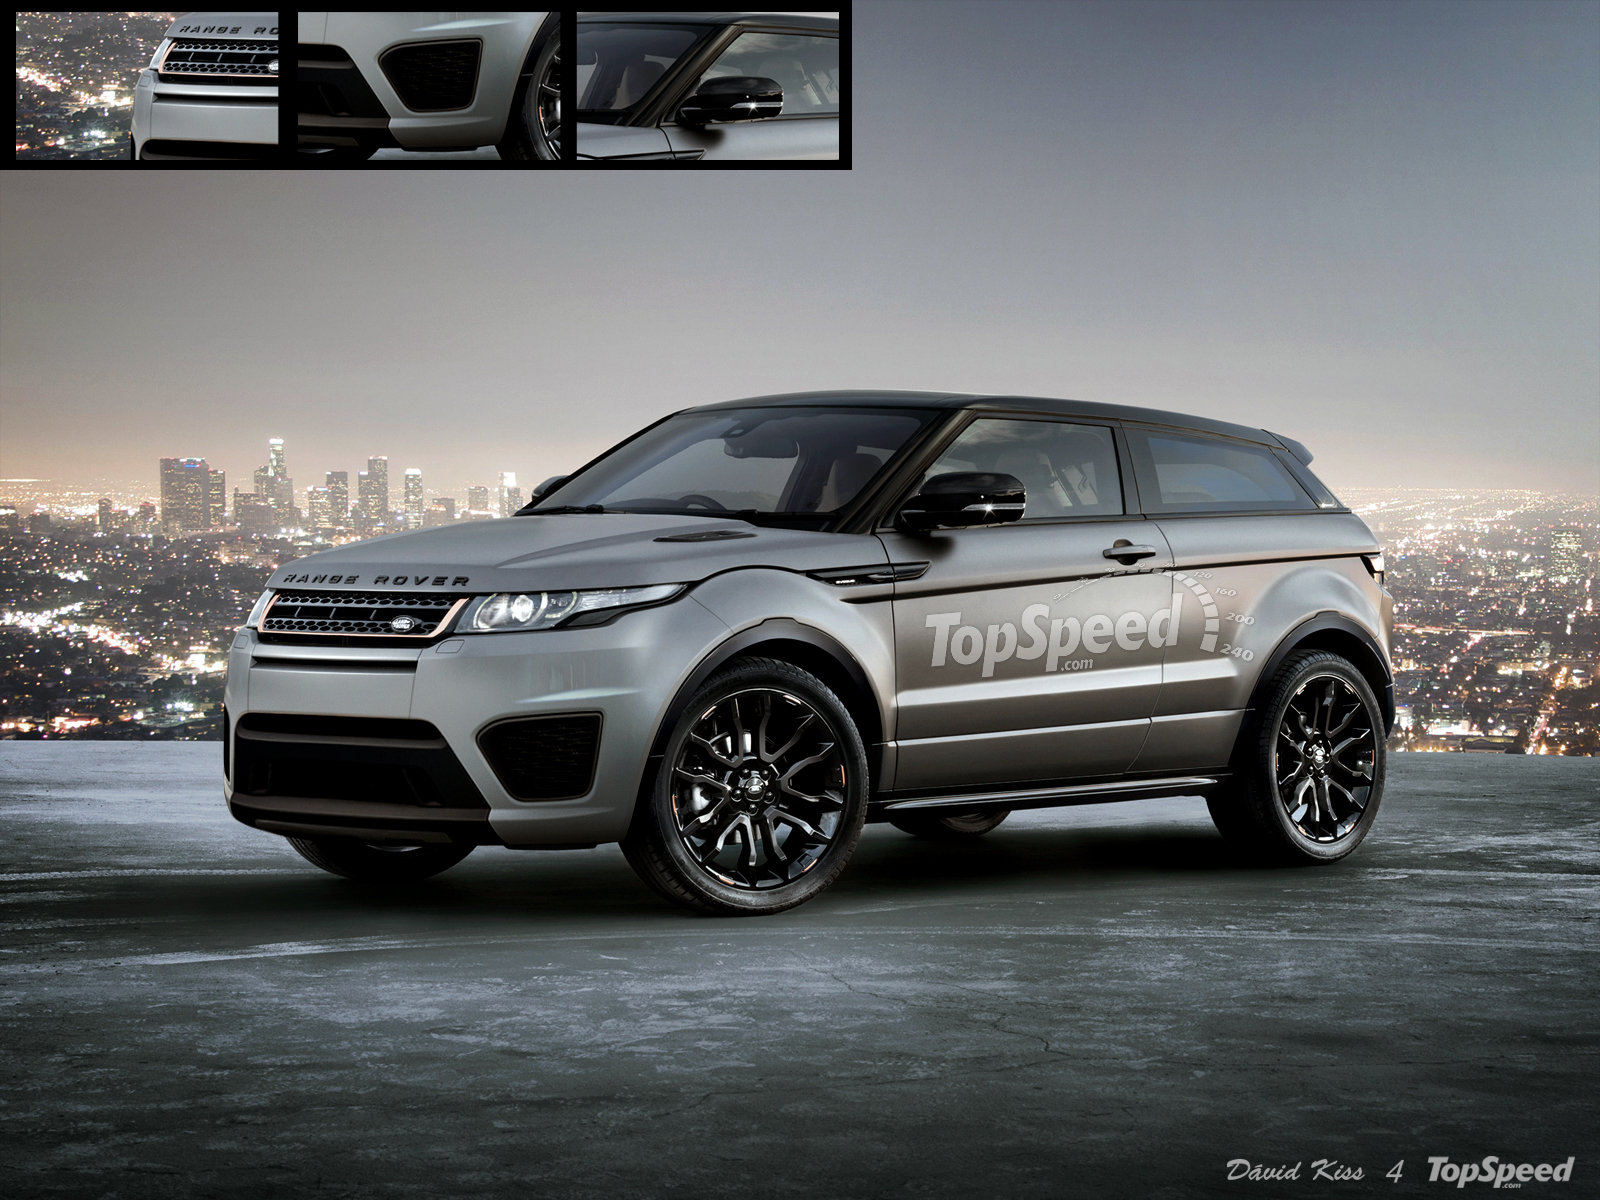 2014 range rover evoque rs review top speed. Black Bedroom Furniture Sets. Home Design Ideas